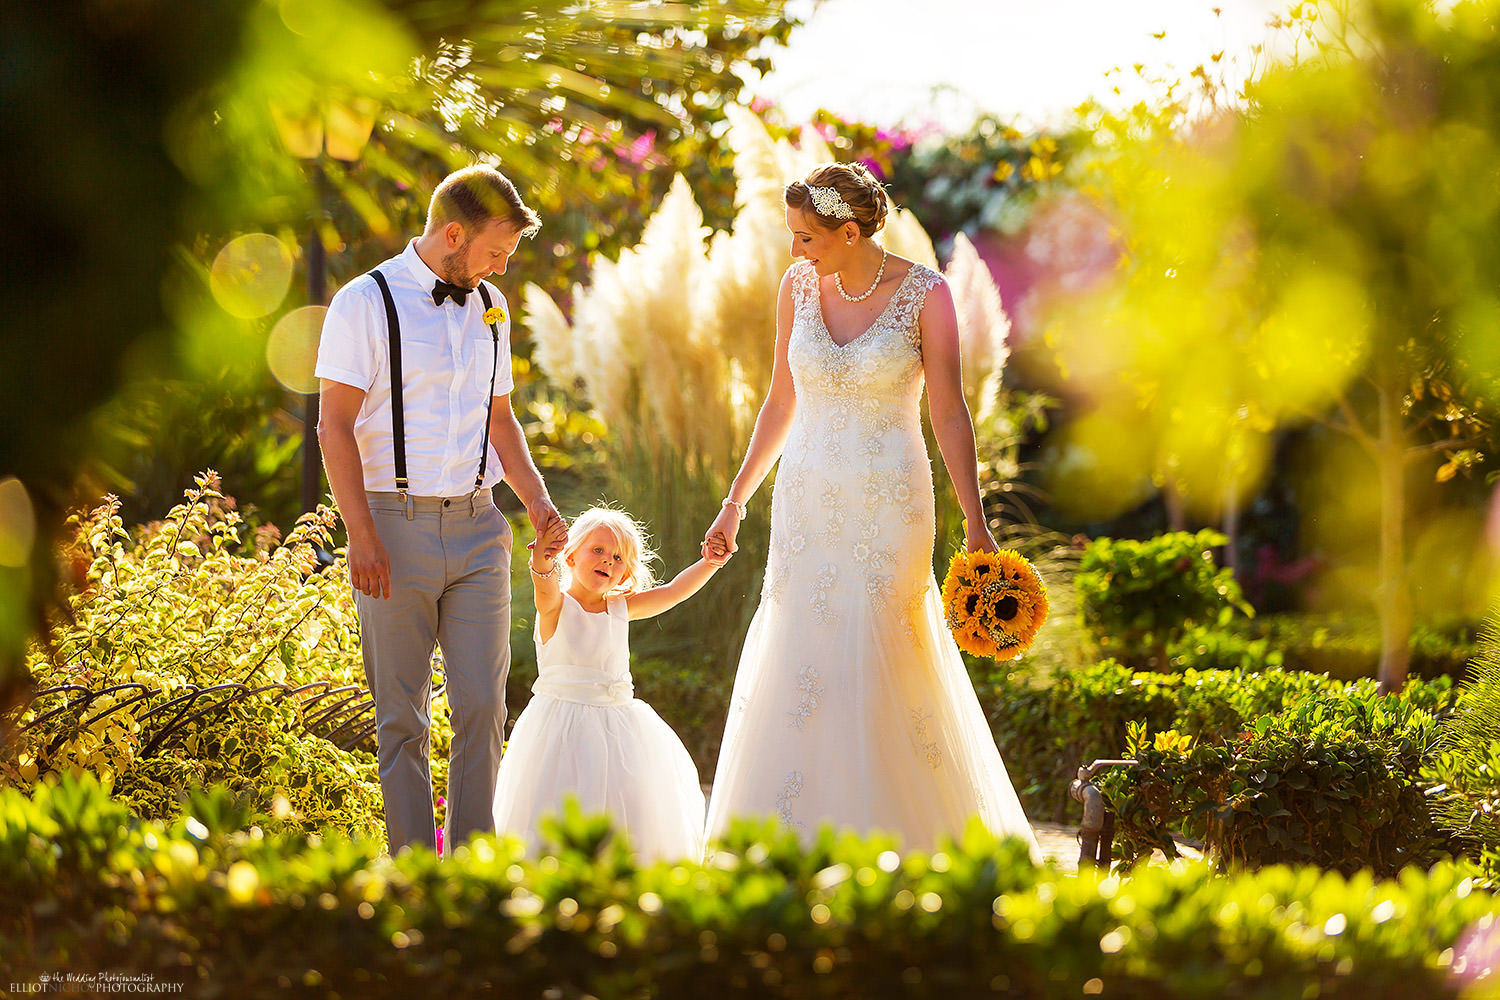 Natural portrait of bride and groom with their daughter. Photo by Elliot Nichol Photography.